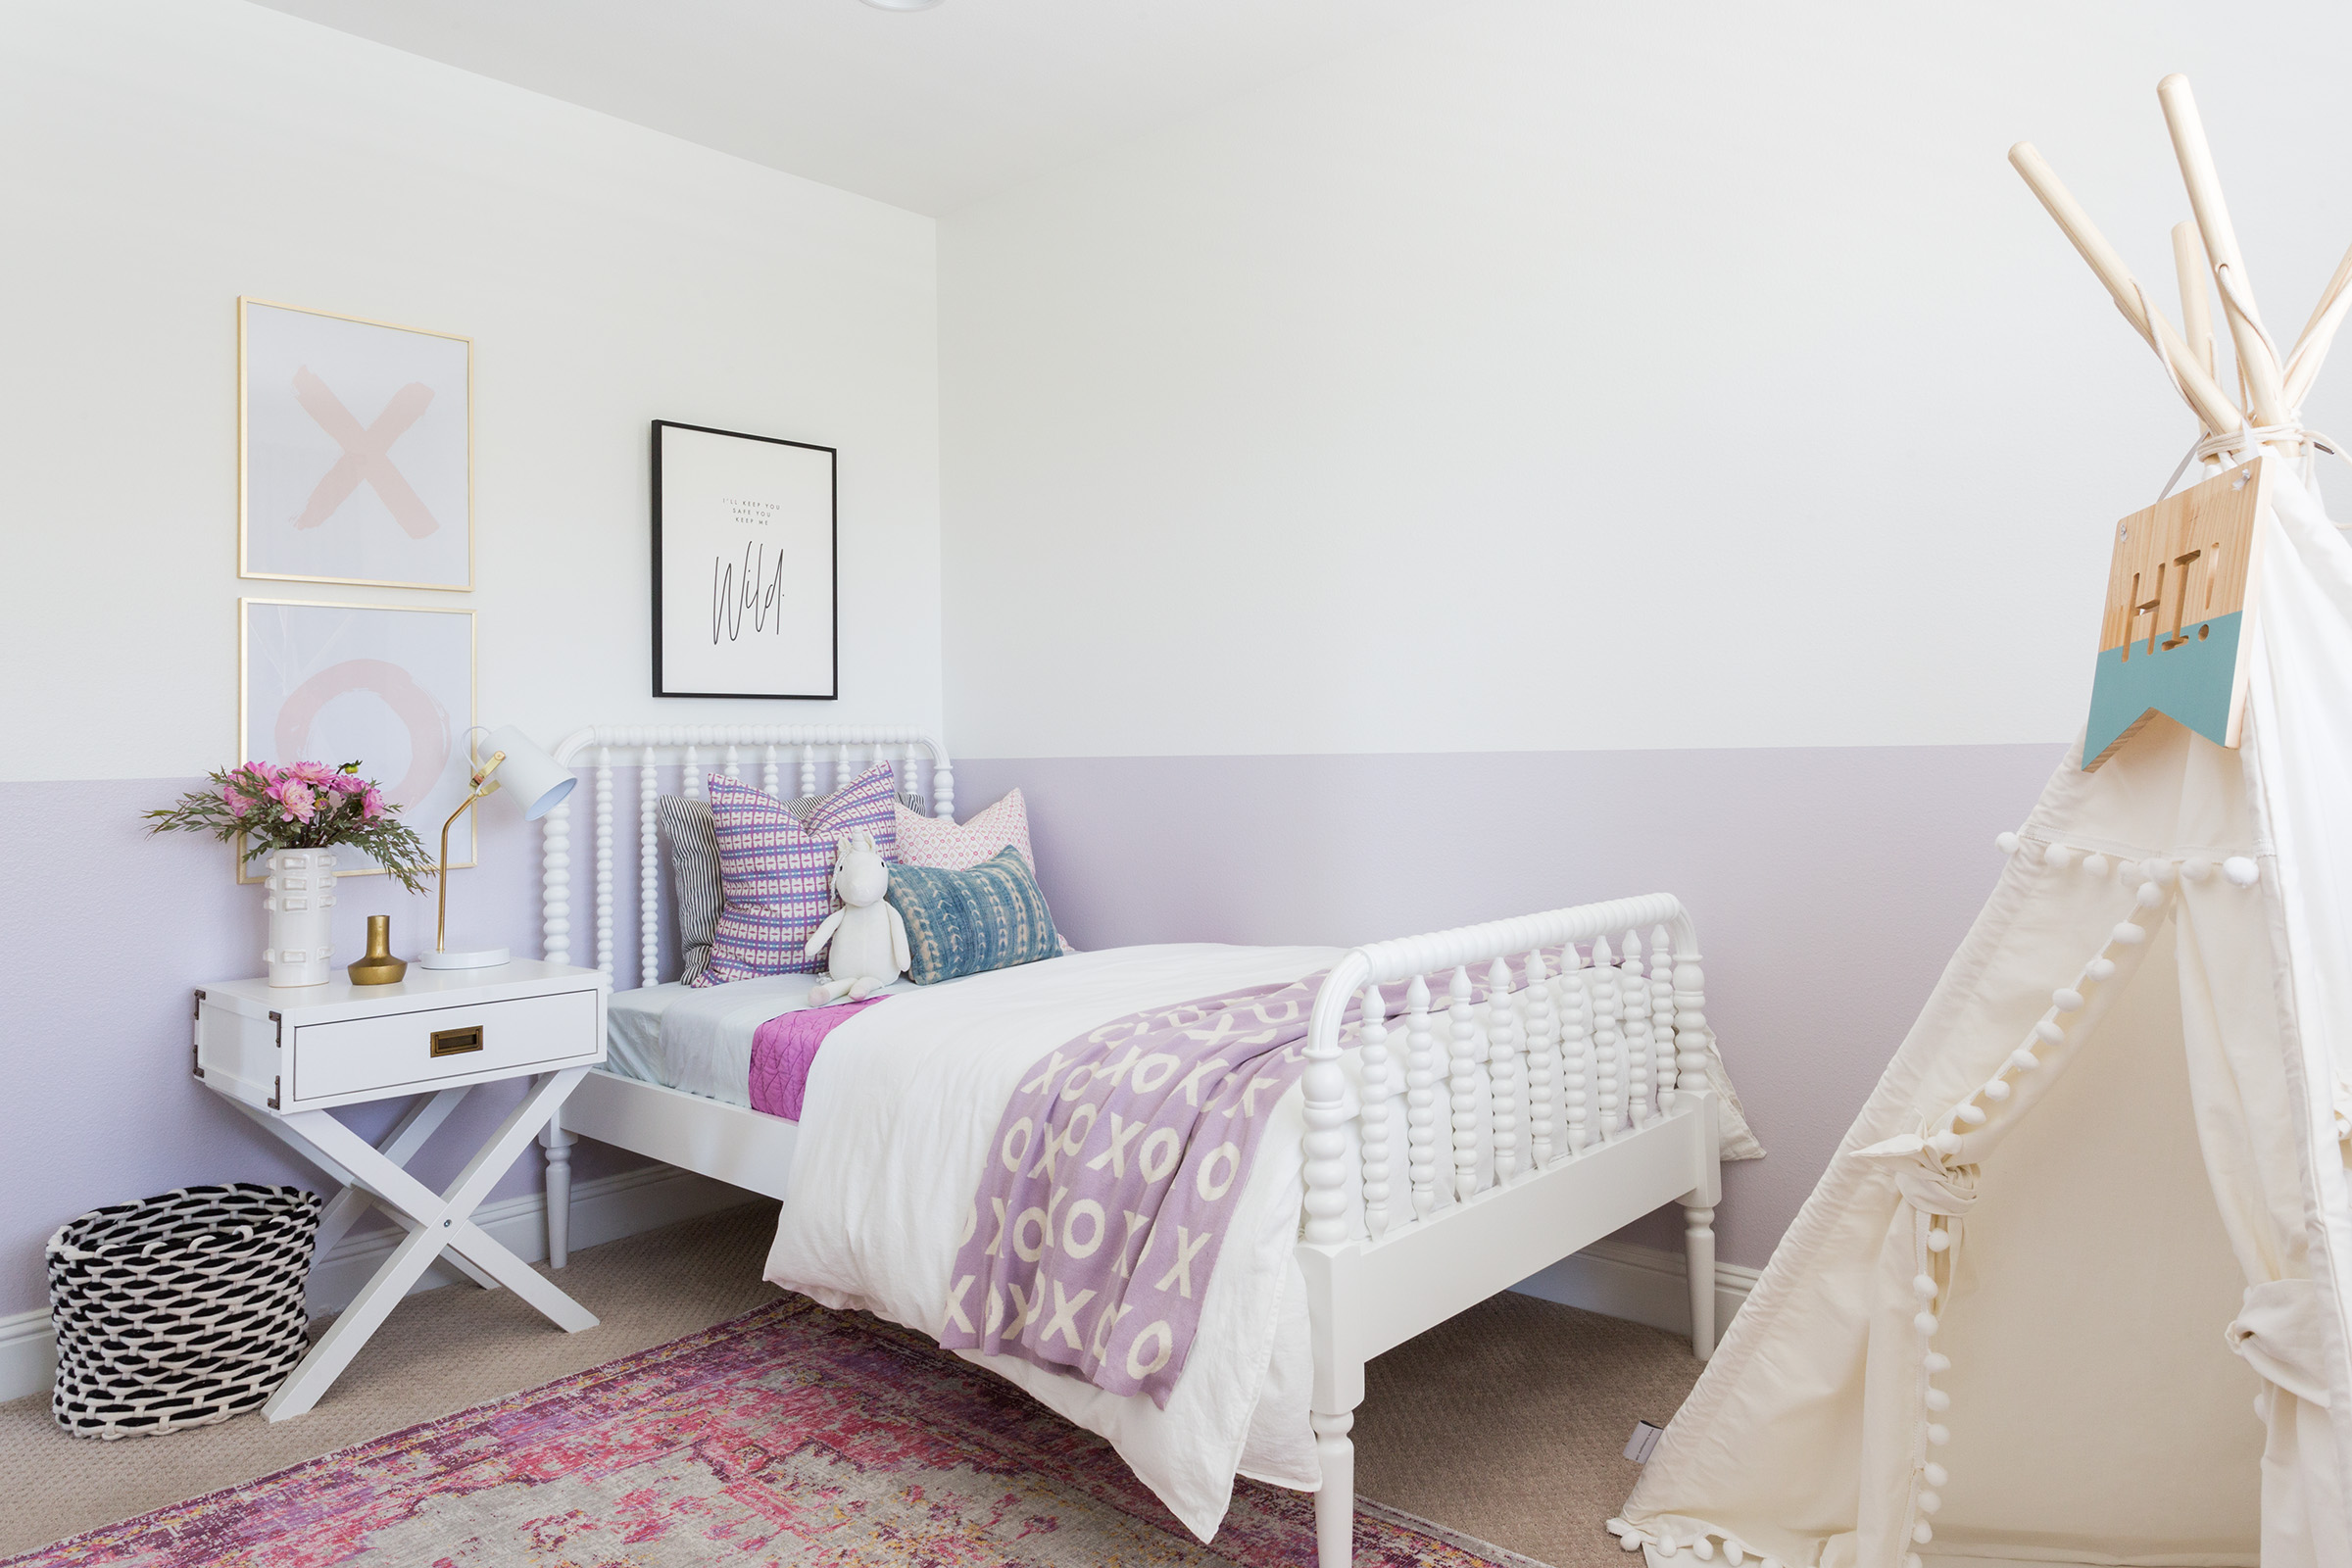 Little Girls room and kids playroom reveal | Lindsey Brooke Design - Los Angeles Interior Designer.jpg